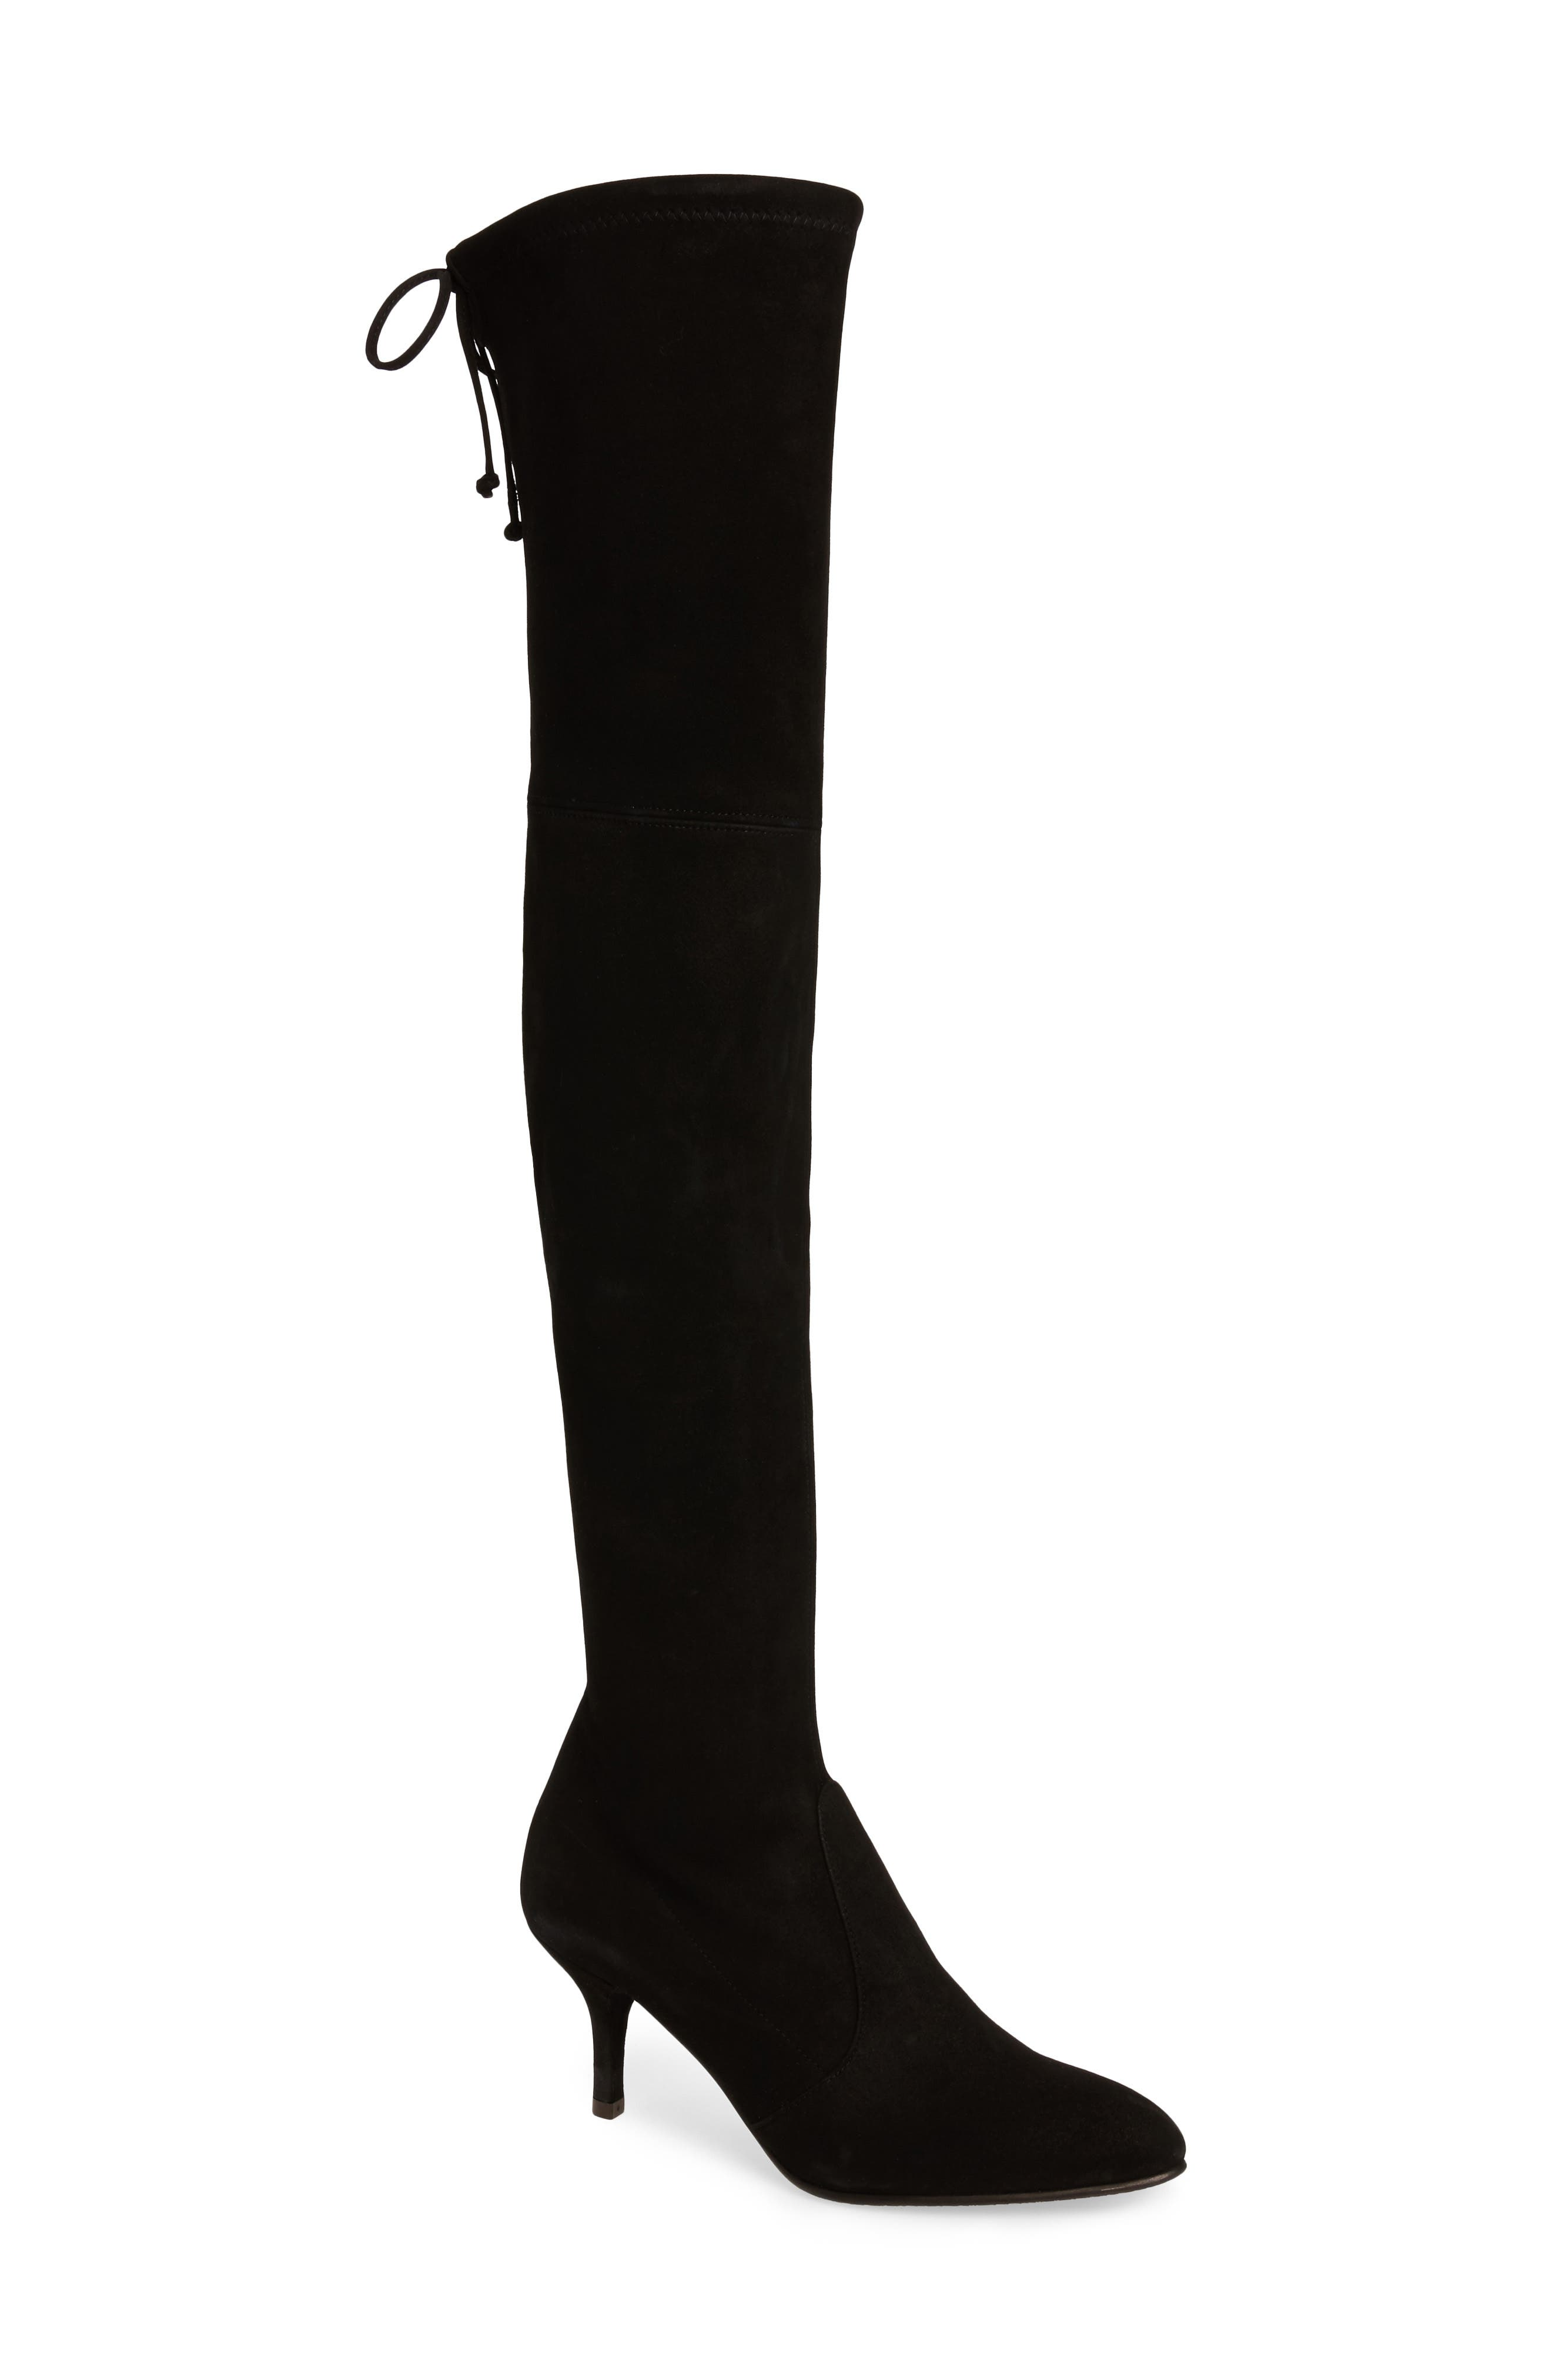 Main Image - Stuart Weitzman Tiemodel Over the Knee Stretch Boot (Women)